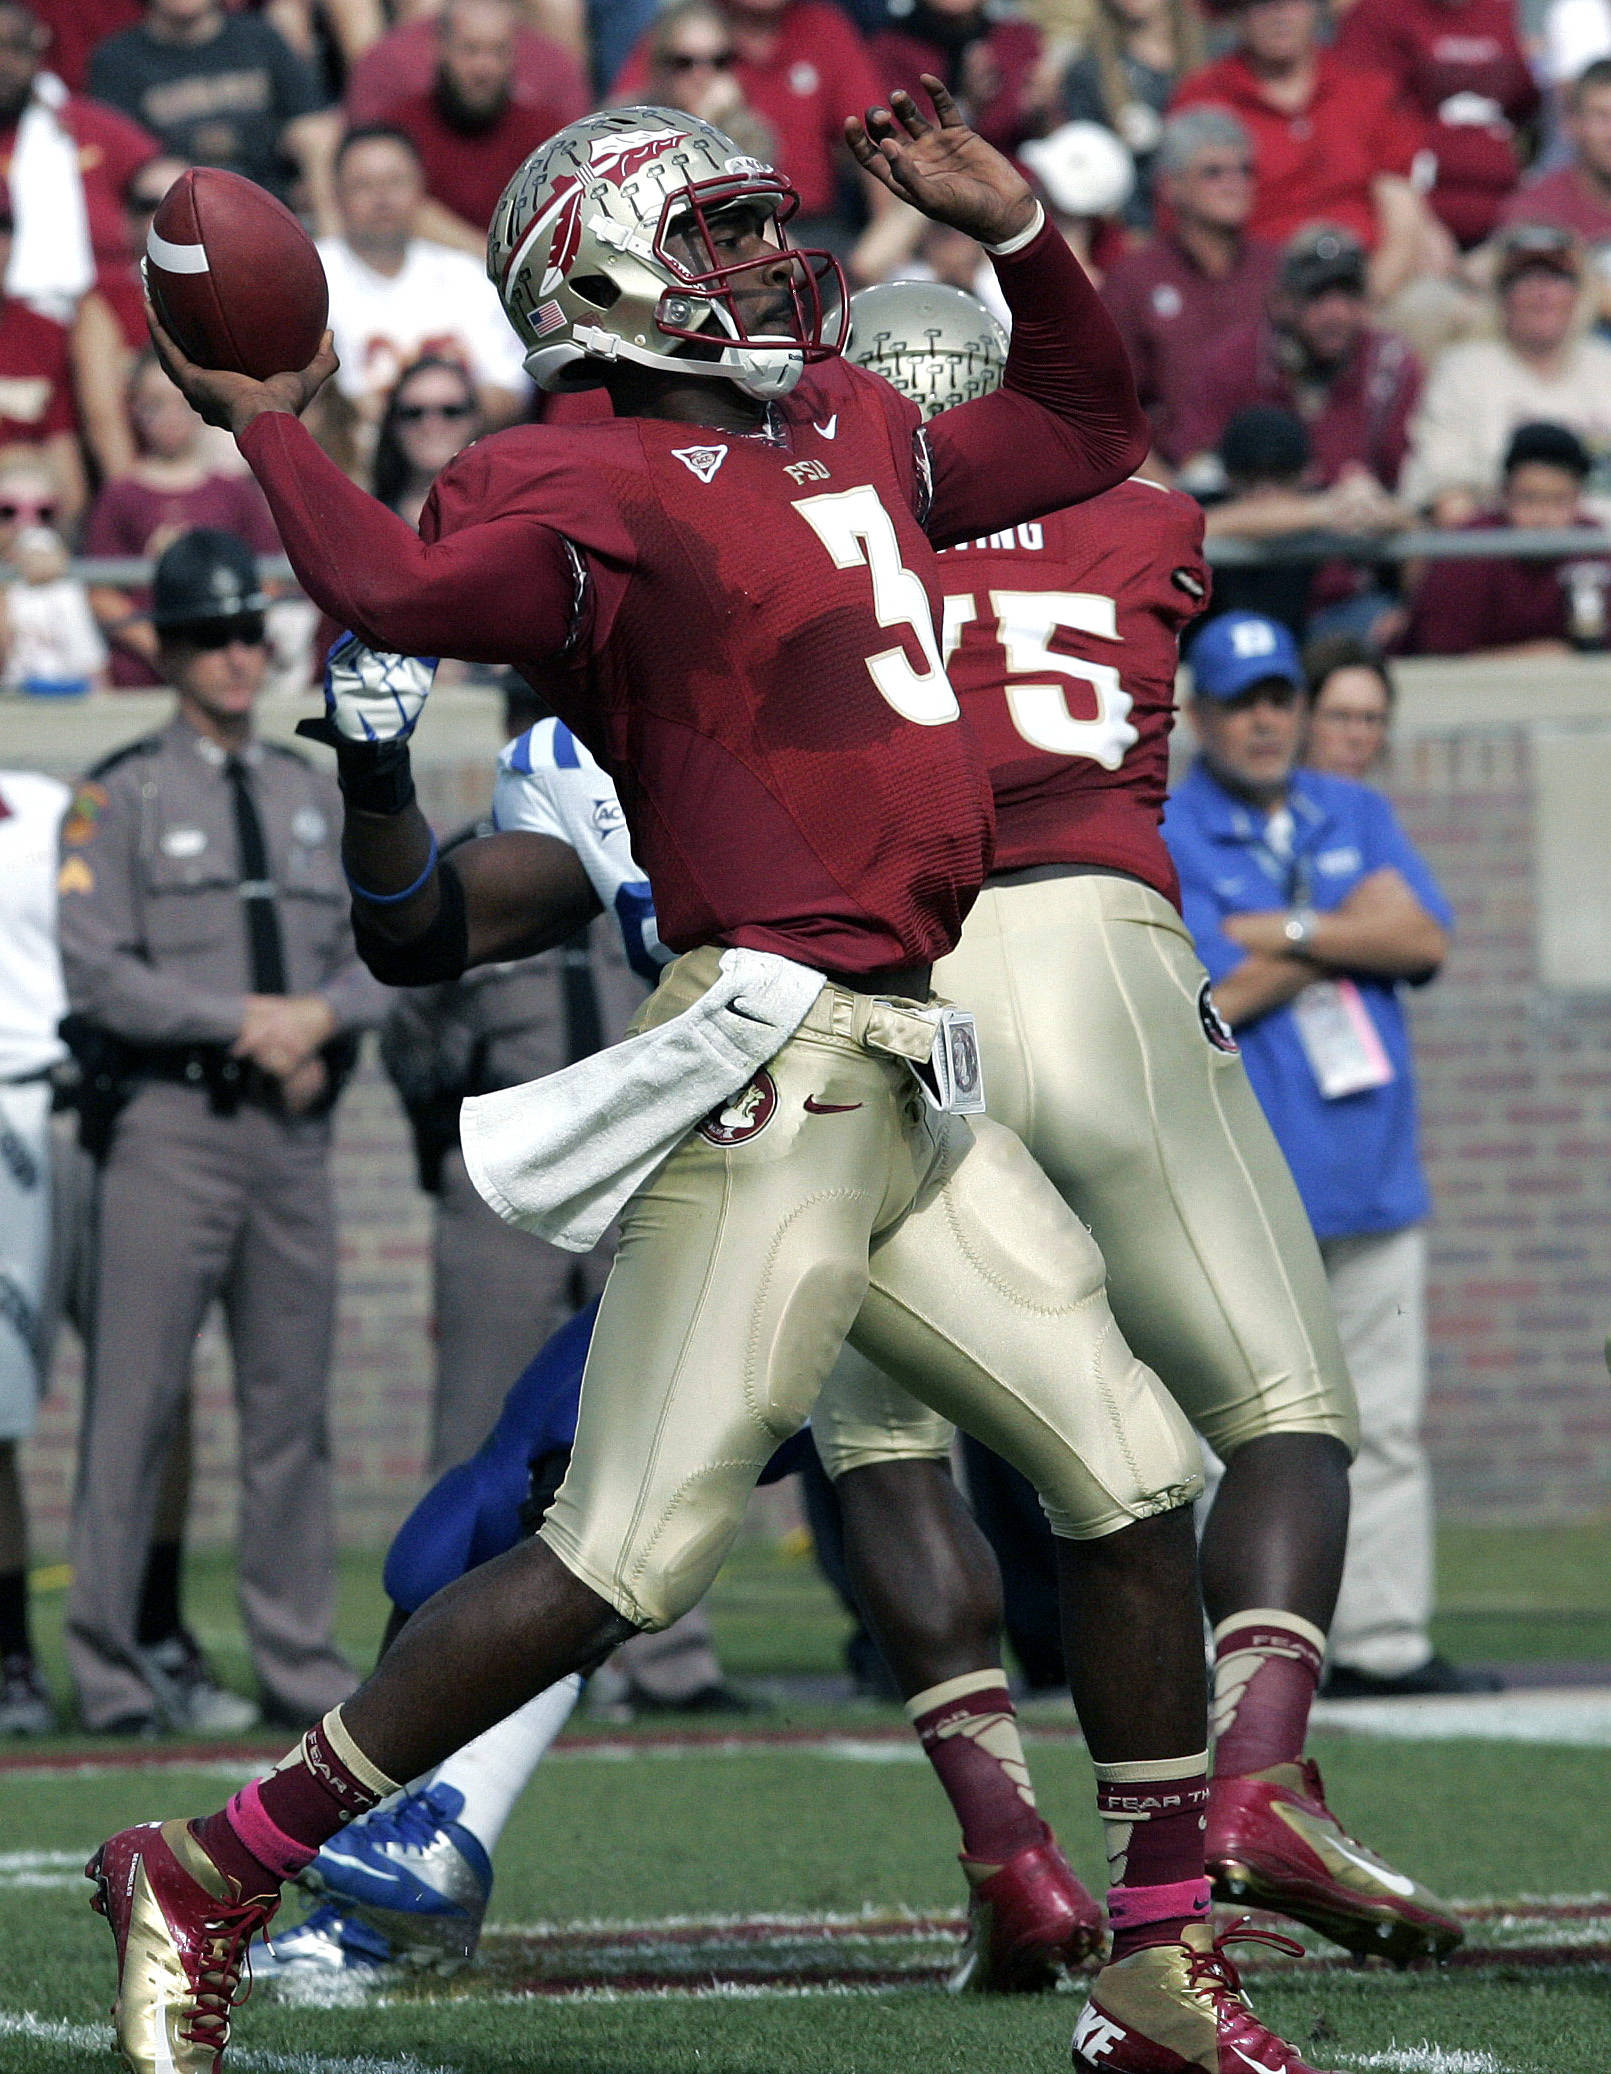 Florida State's EJ Manuel throws to Rashad Greene for a touchdown against Duke in the first quarter. (AP Photo/Steve Cannon)